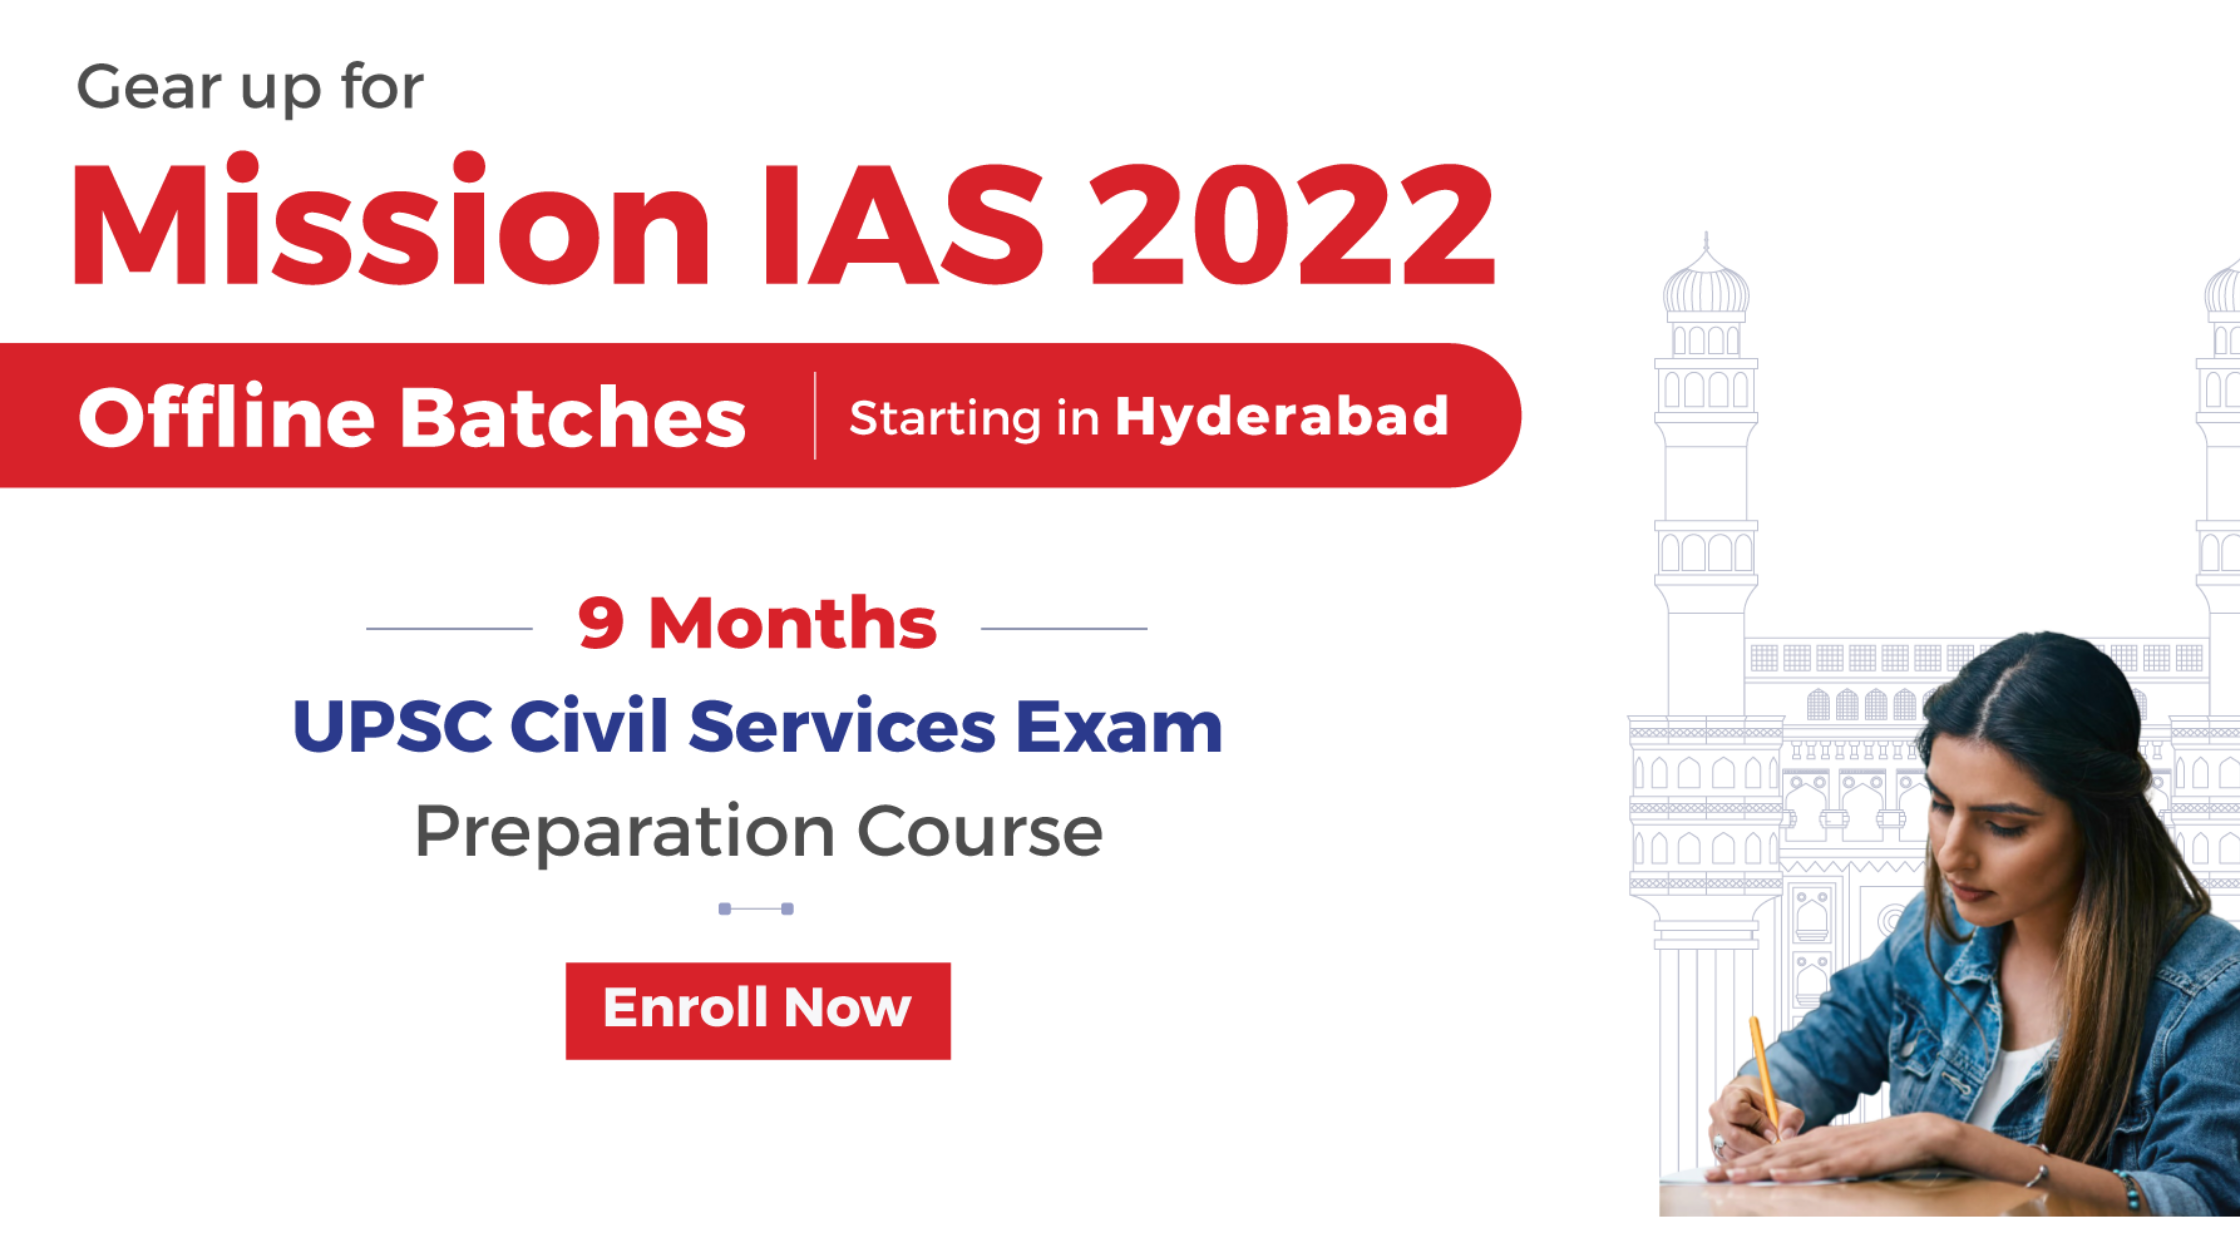 GS- New batches in Hyderabad